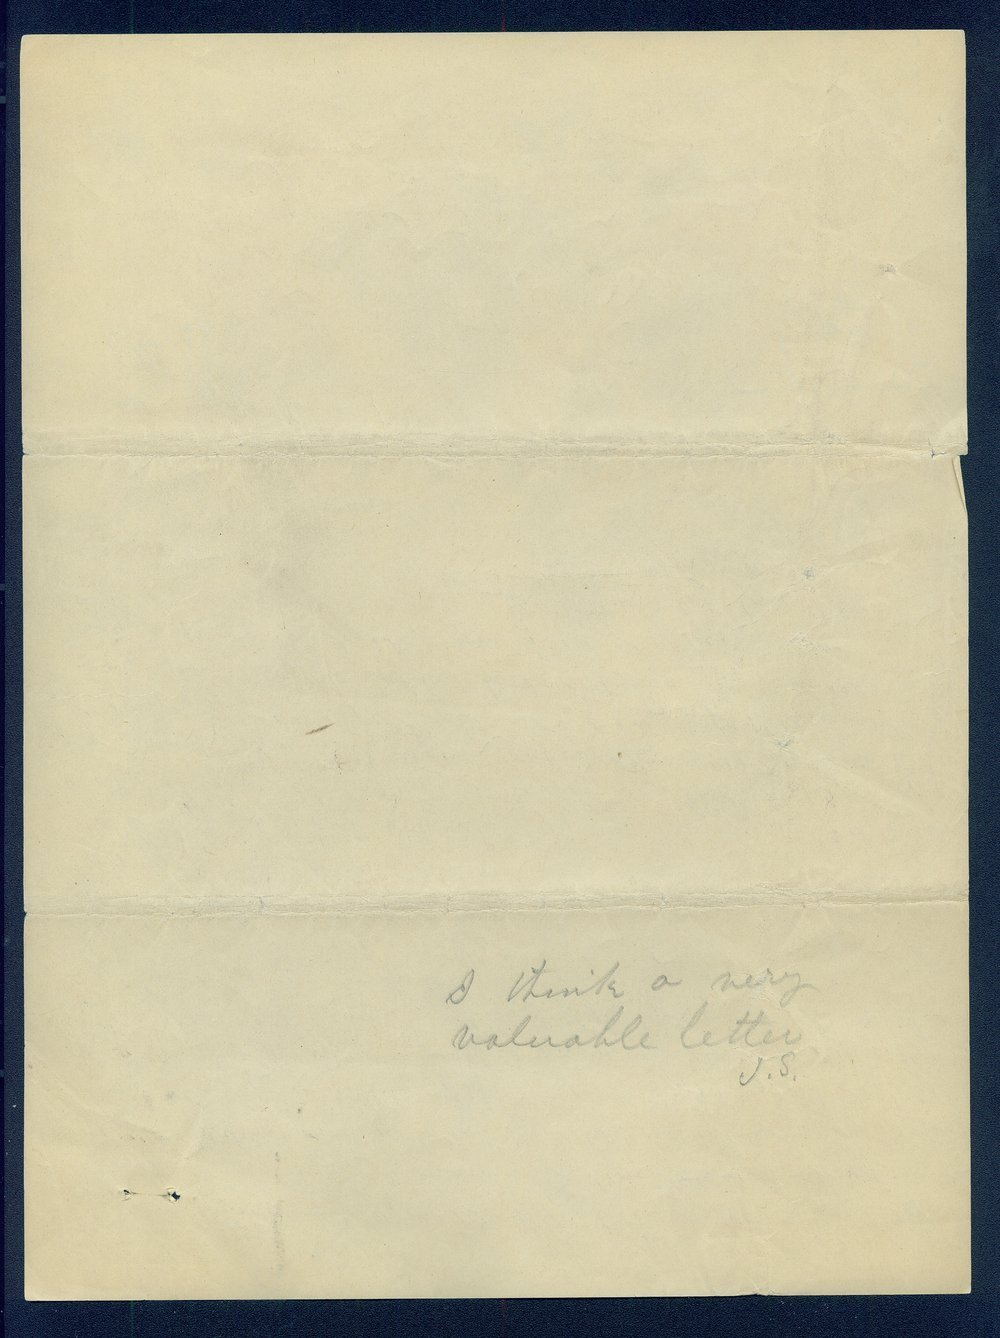 William Walker to G.P. Disosway - 6